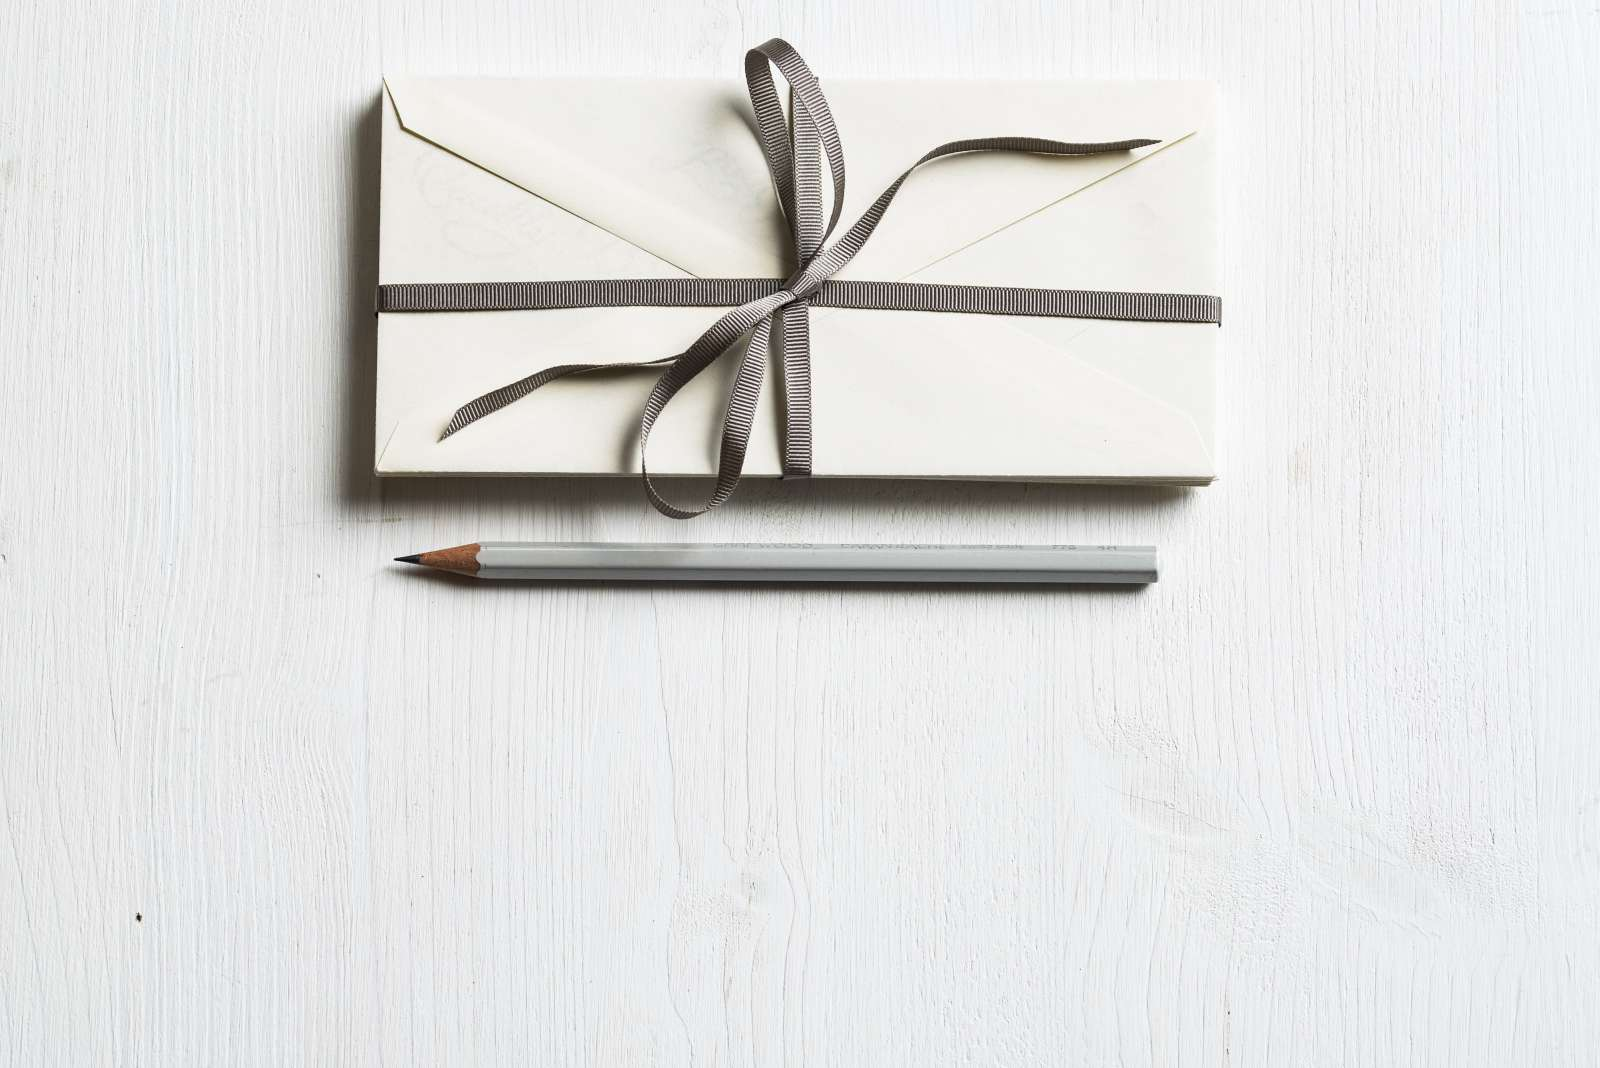 A pencil and letter